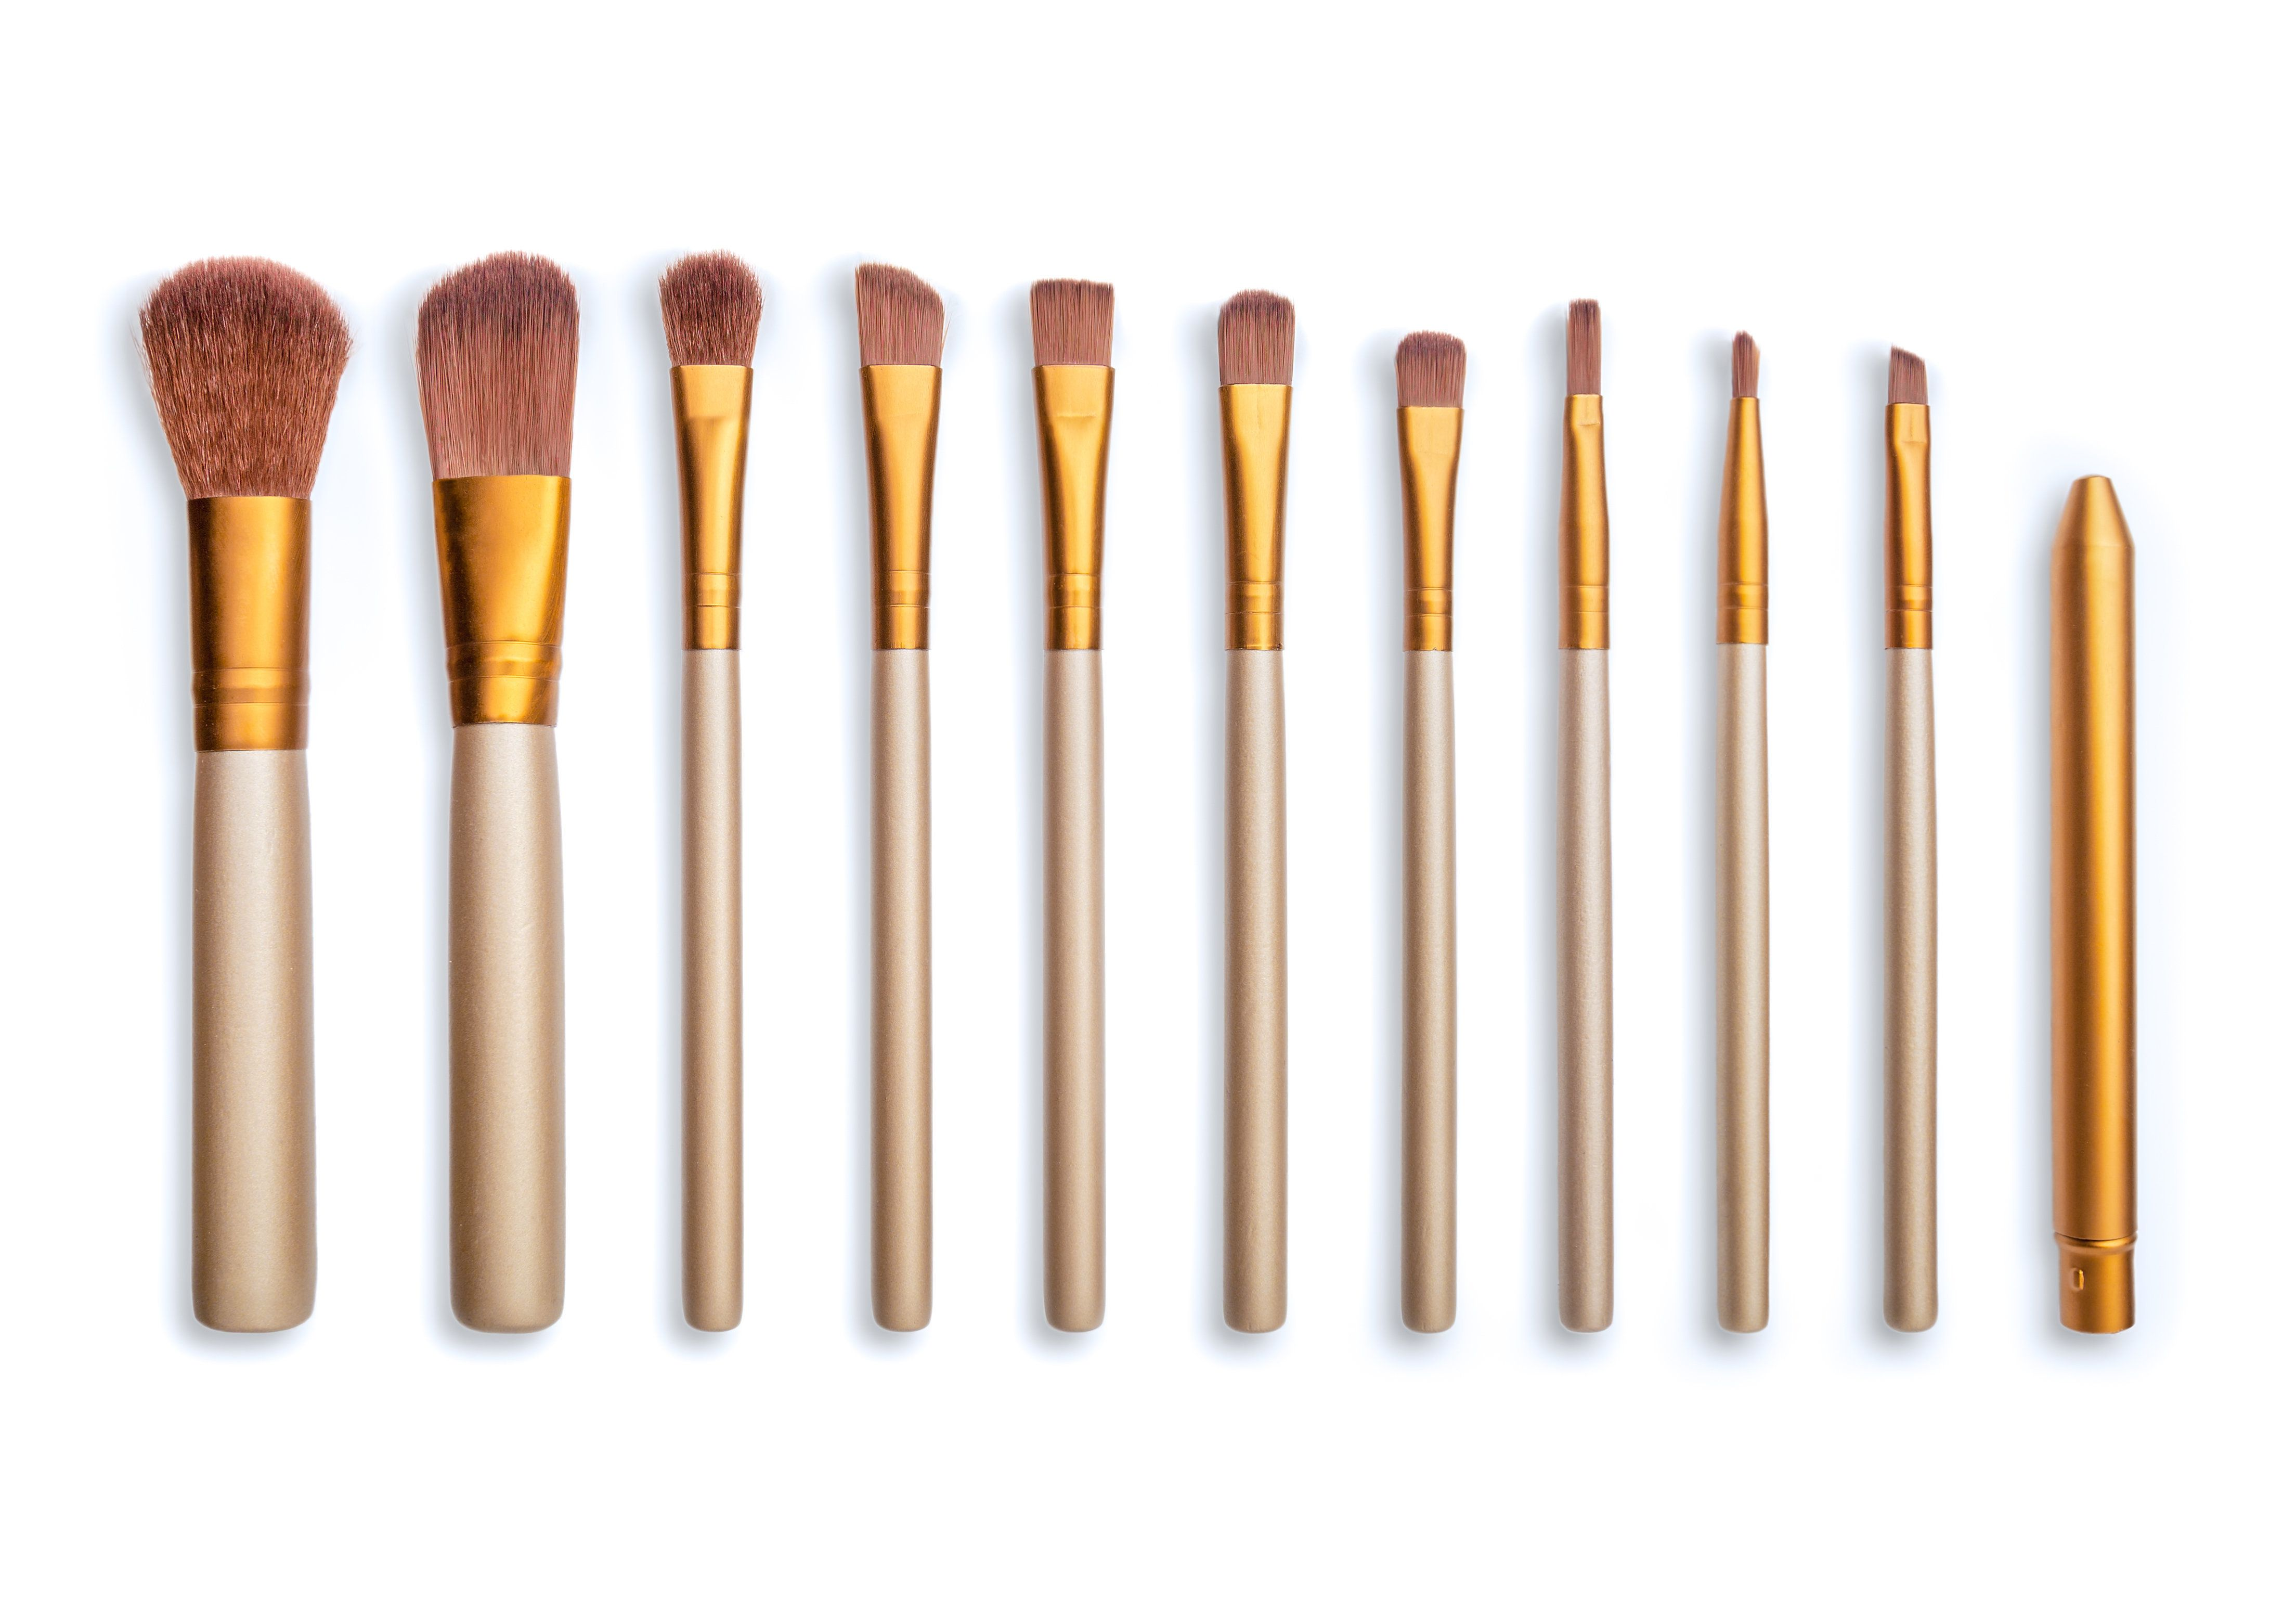 15 CrueltyFree Makeup Brushes To Add To Your EcoFriendly